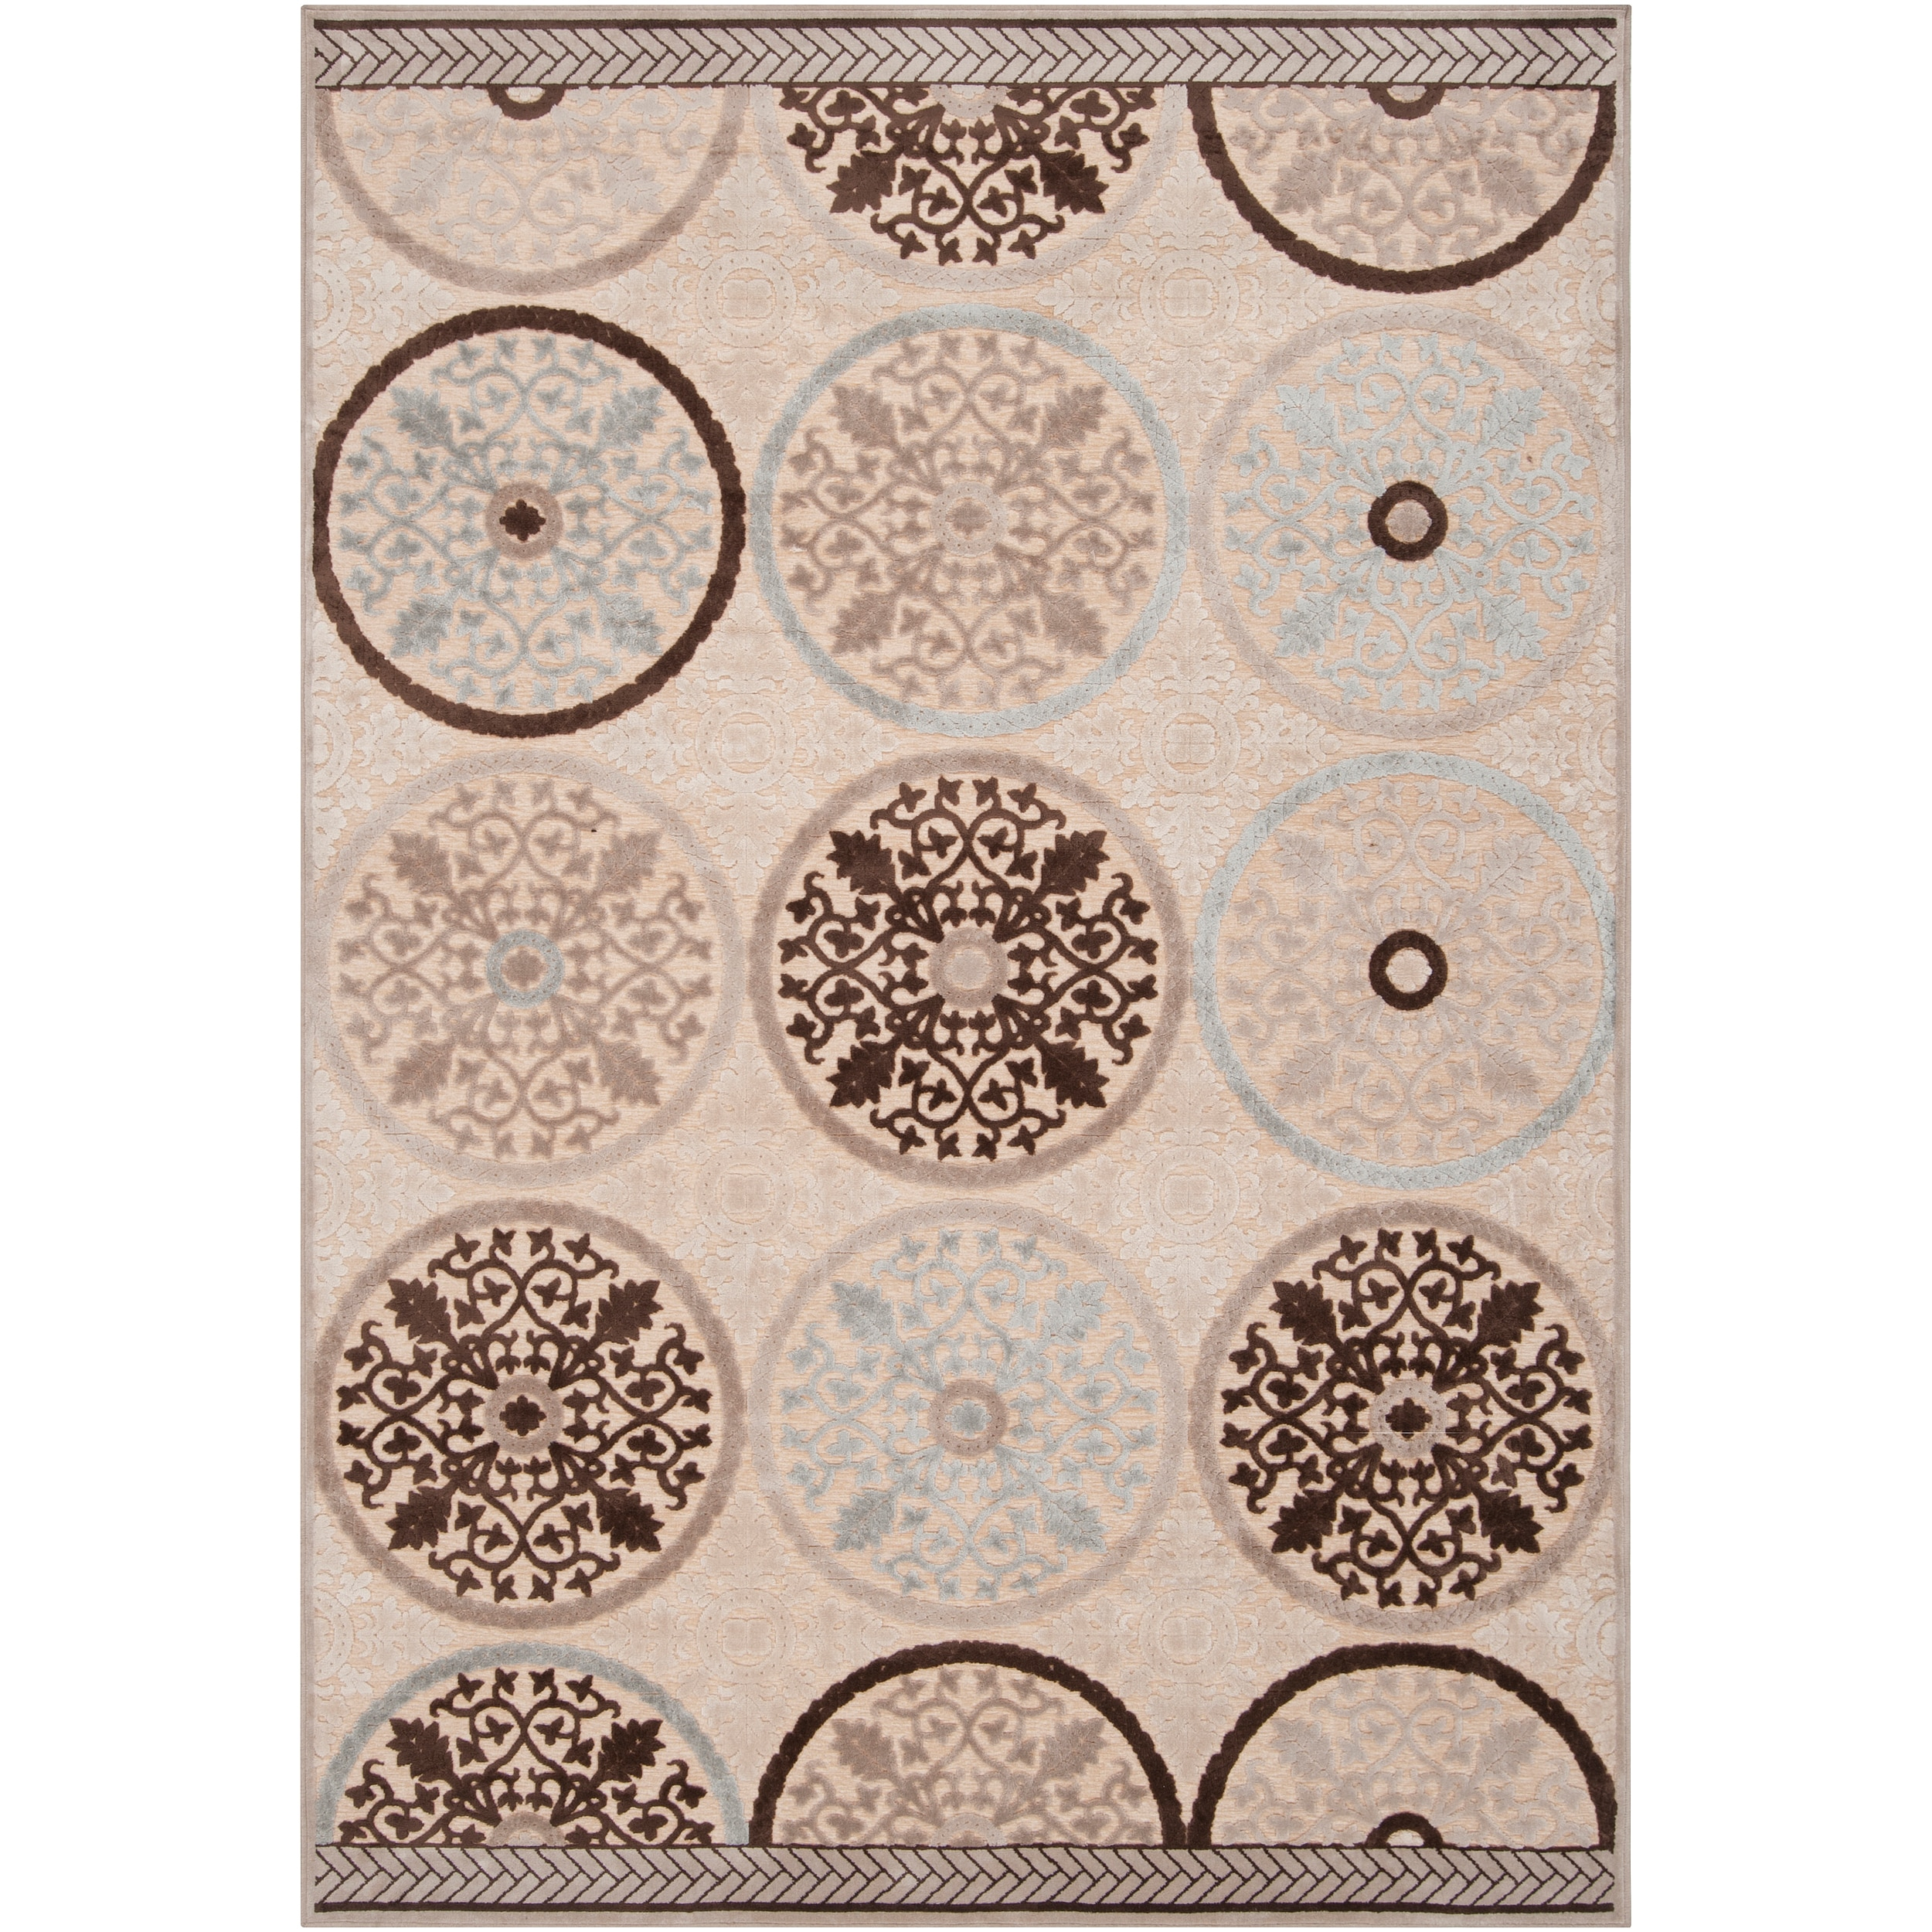 Clay Cream Viscose/Chenille Area Rug - 5'1 x 7'6